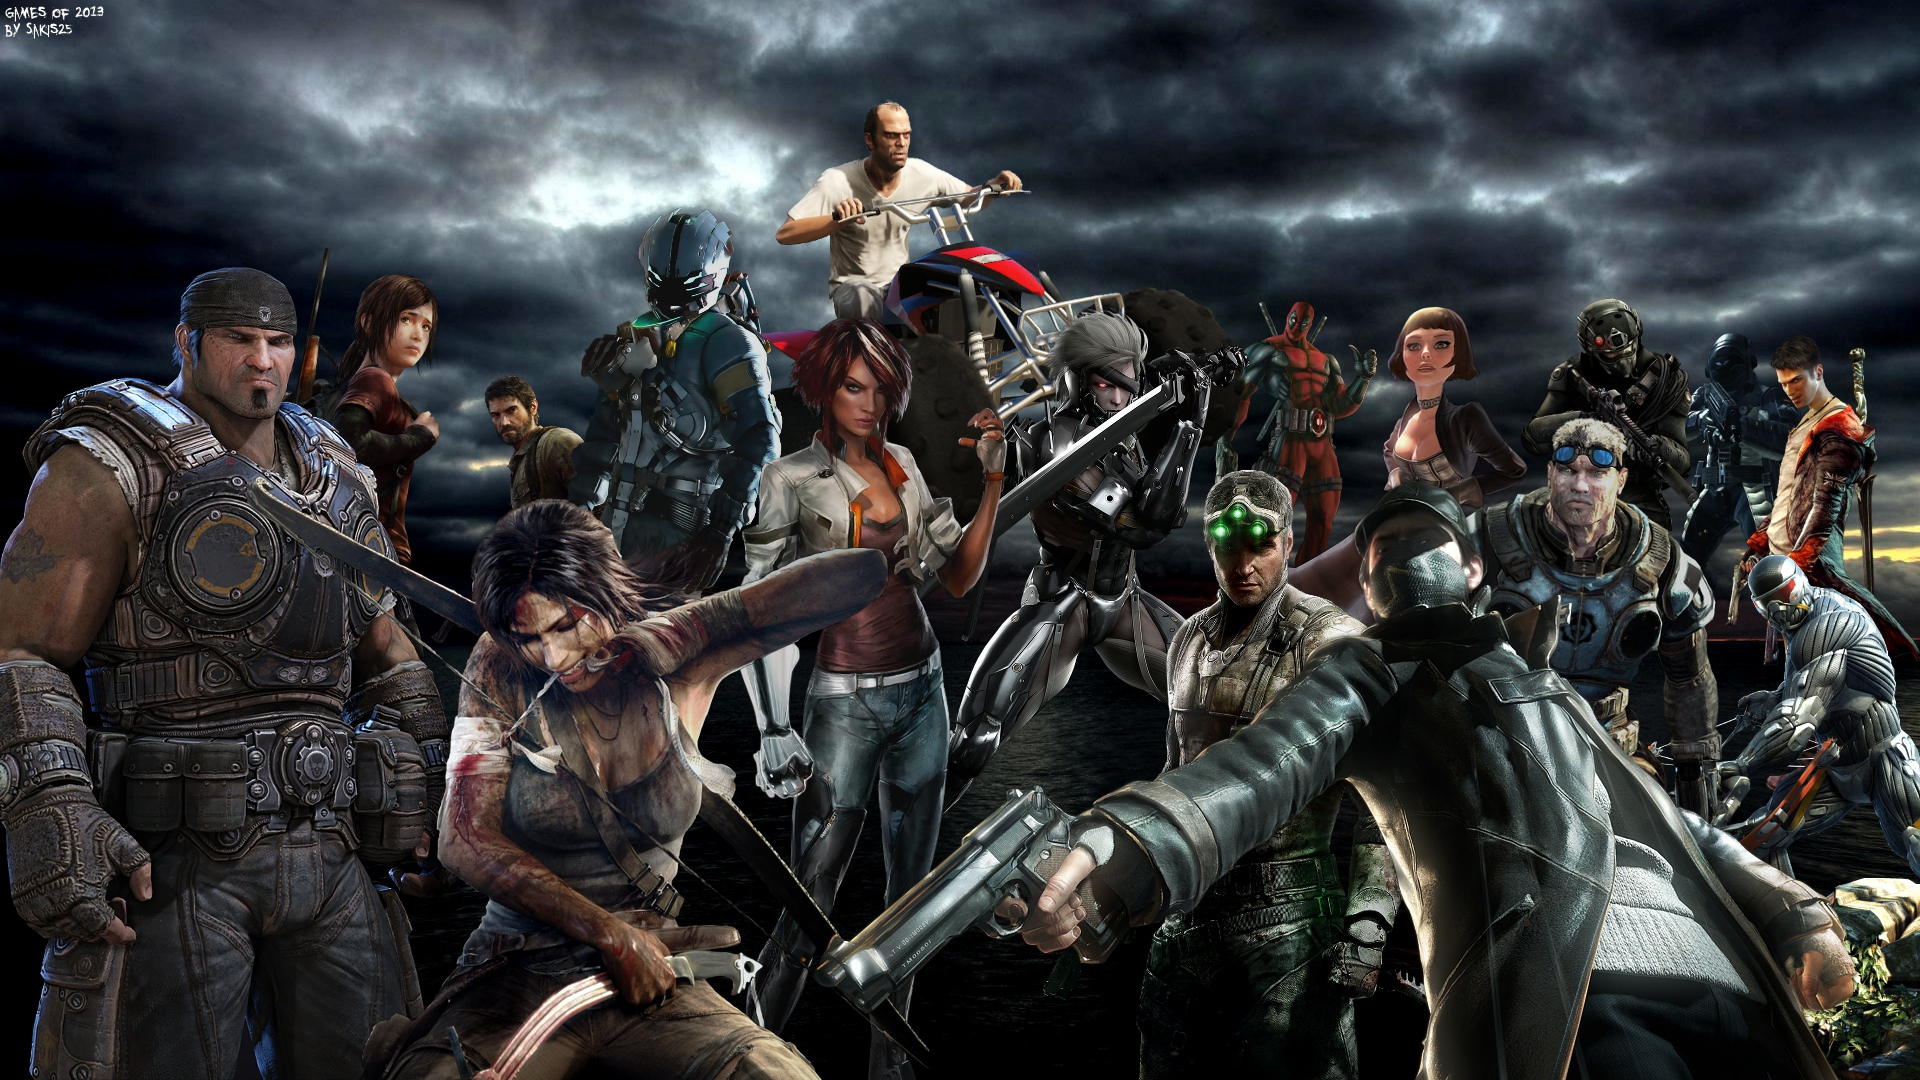 games_of_2013_wallpaper_by_sakis25_by_sakis25-d5m89m5